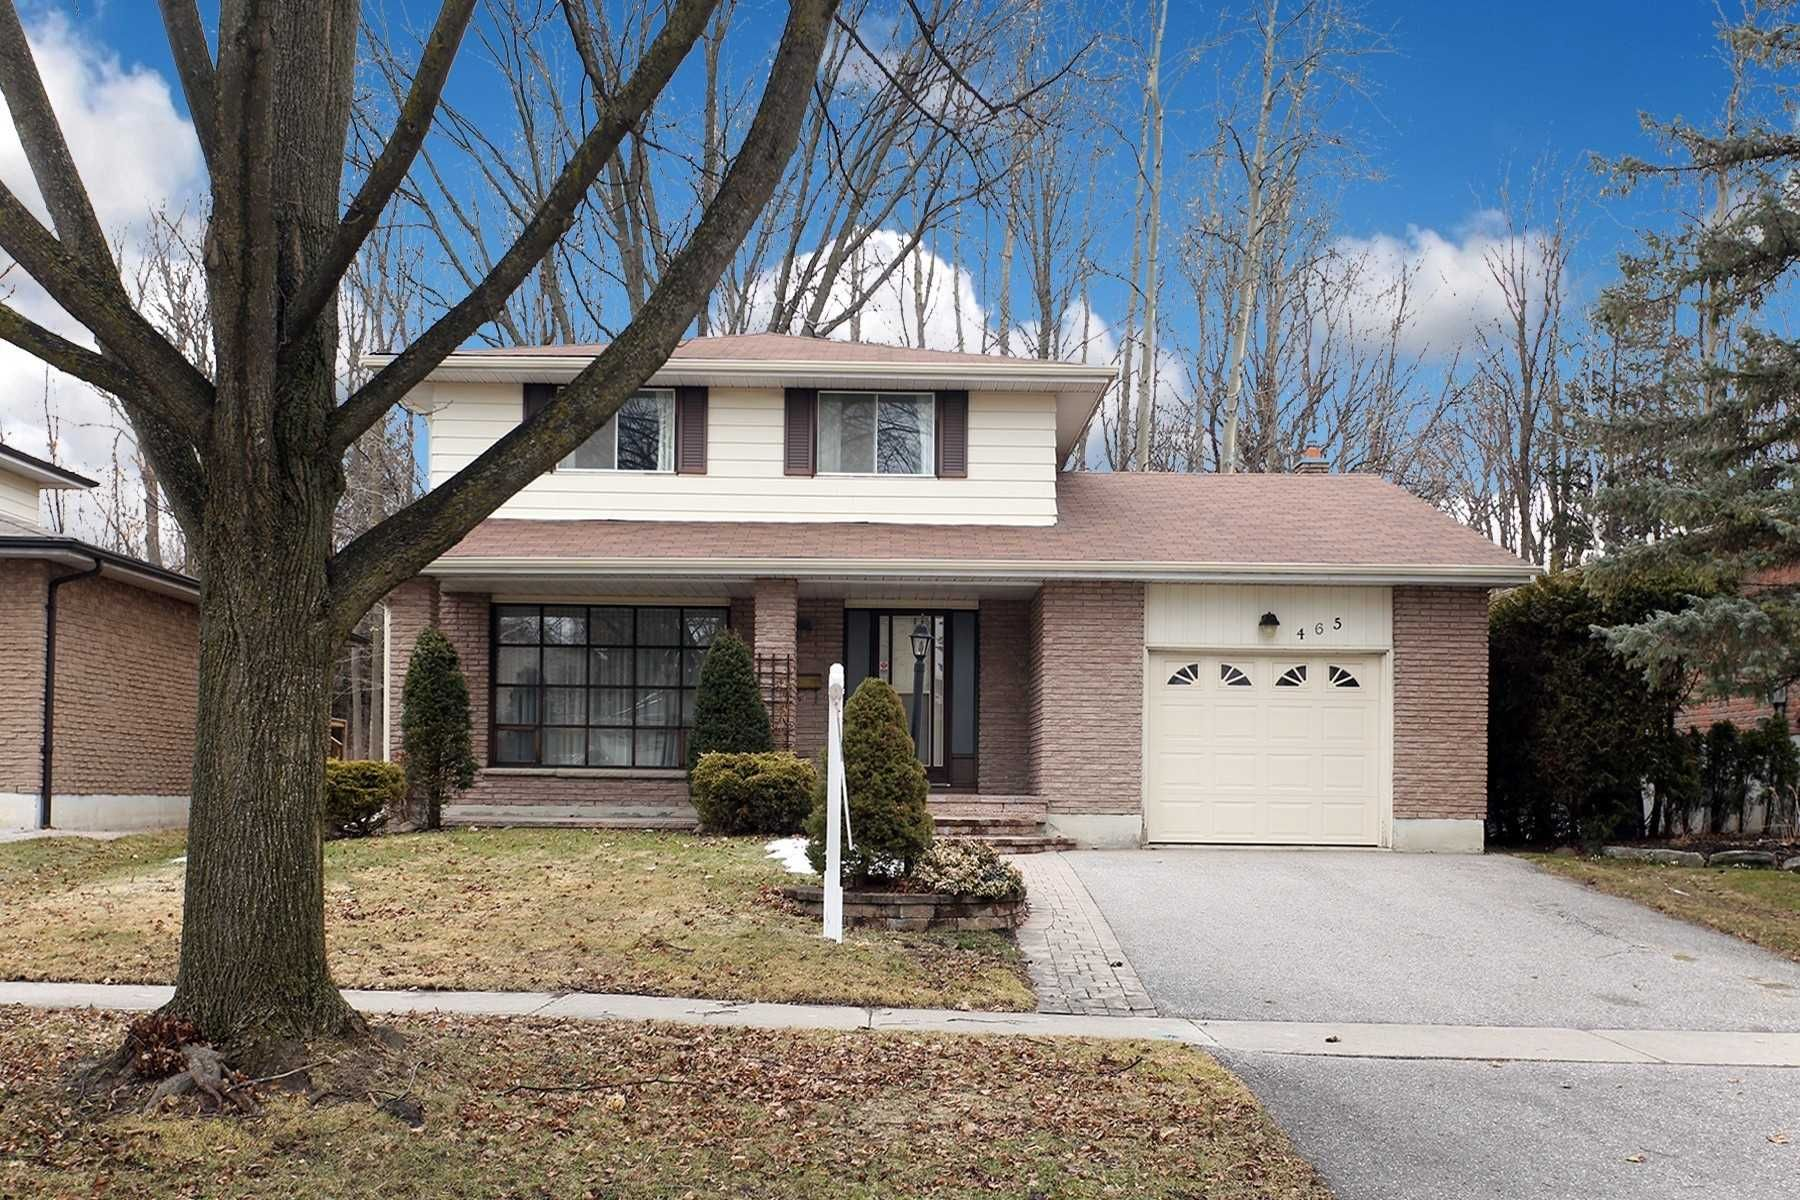 Main Photo: 465 Paddington Crescent in Oshawa: Centennial House (2-Storey) for sale : MLS®# E4719052